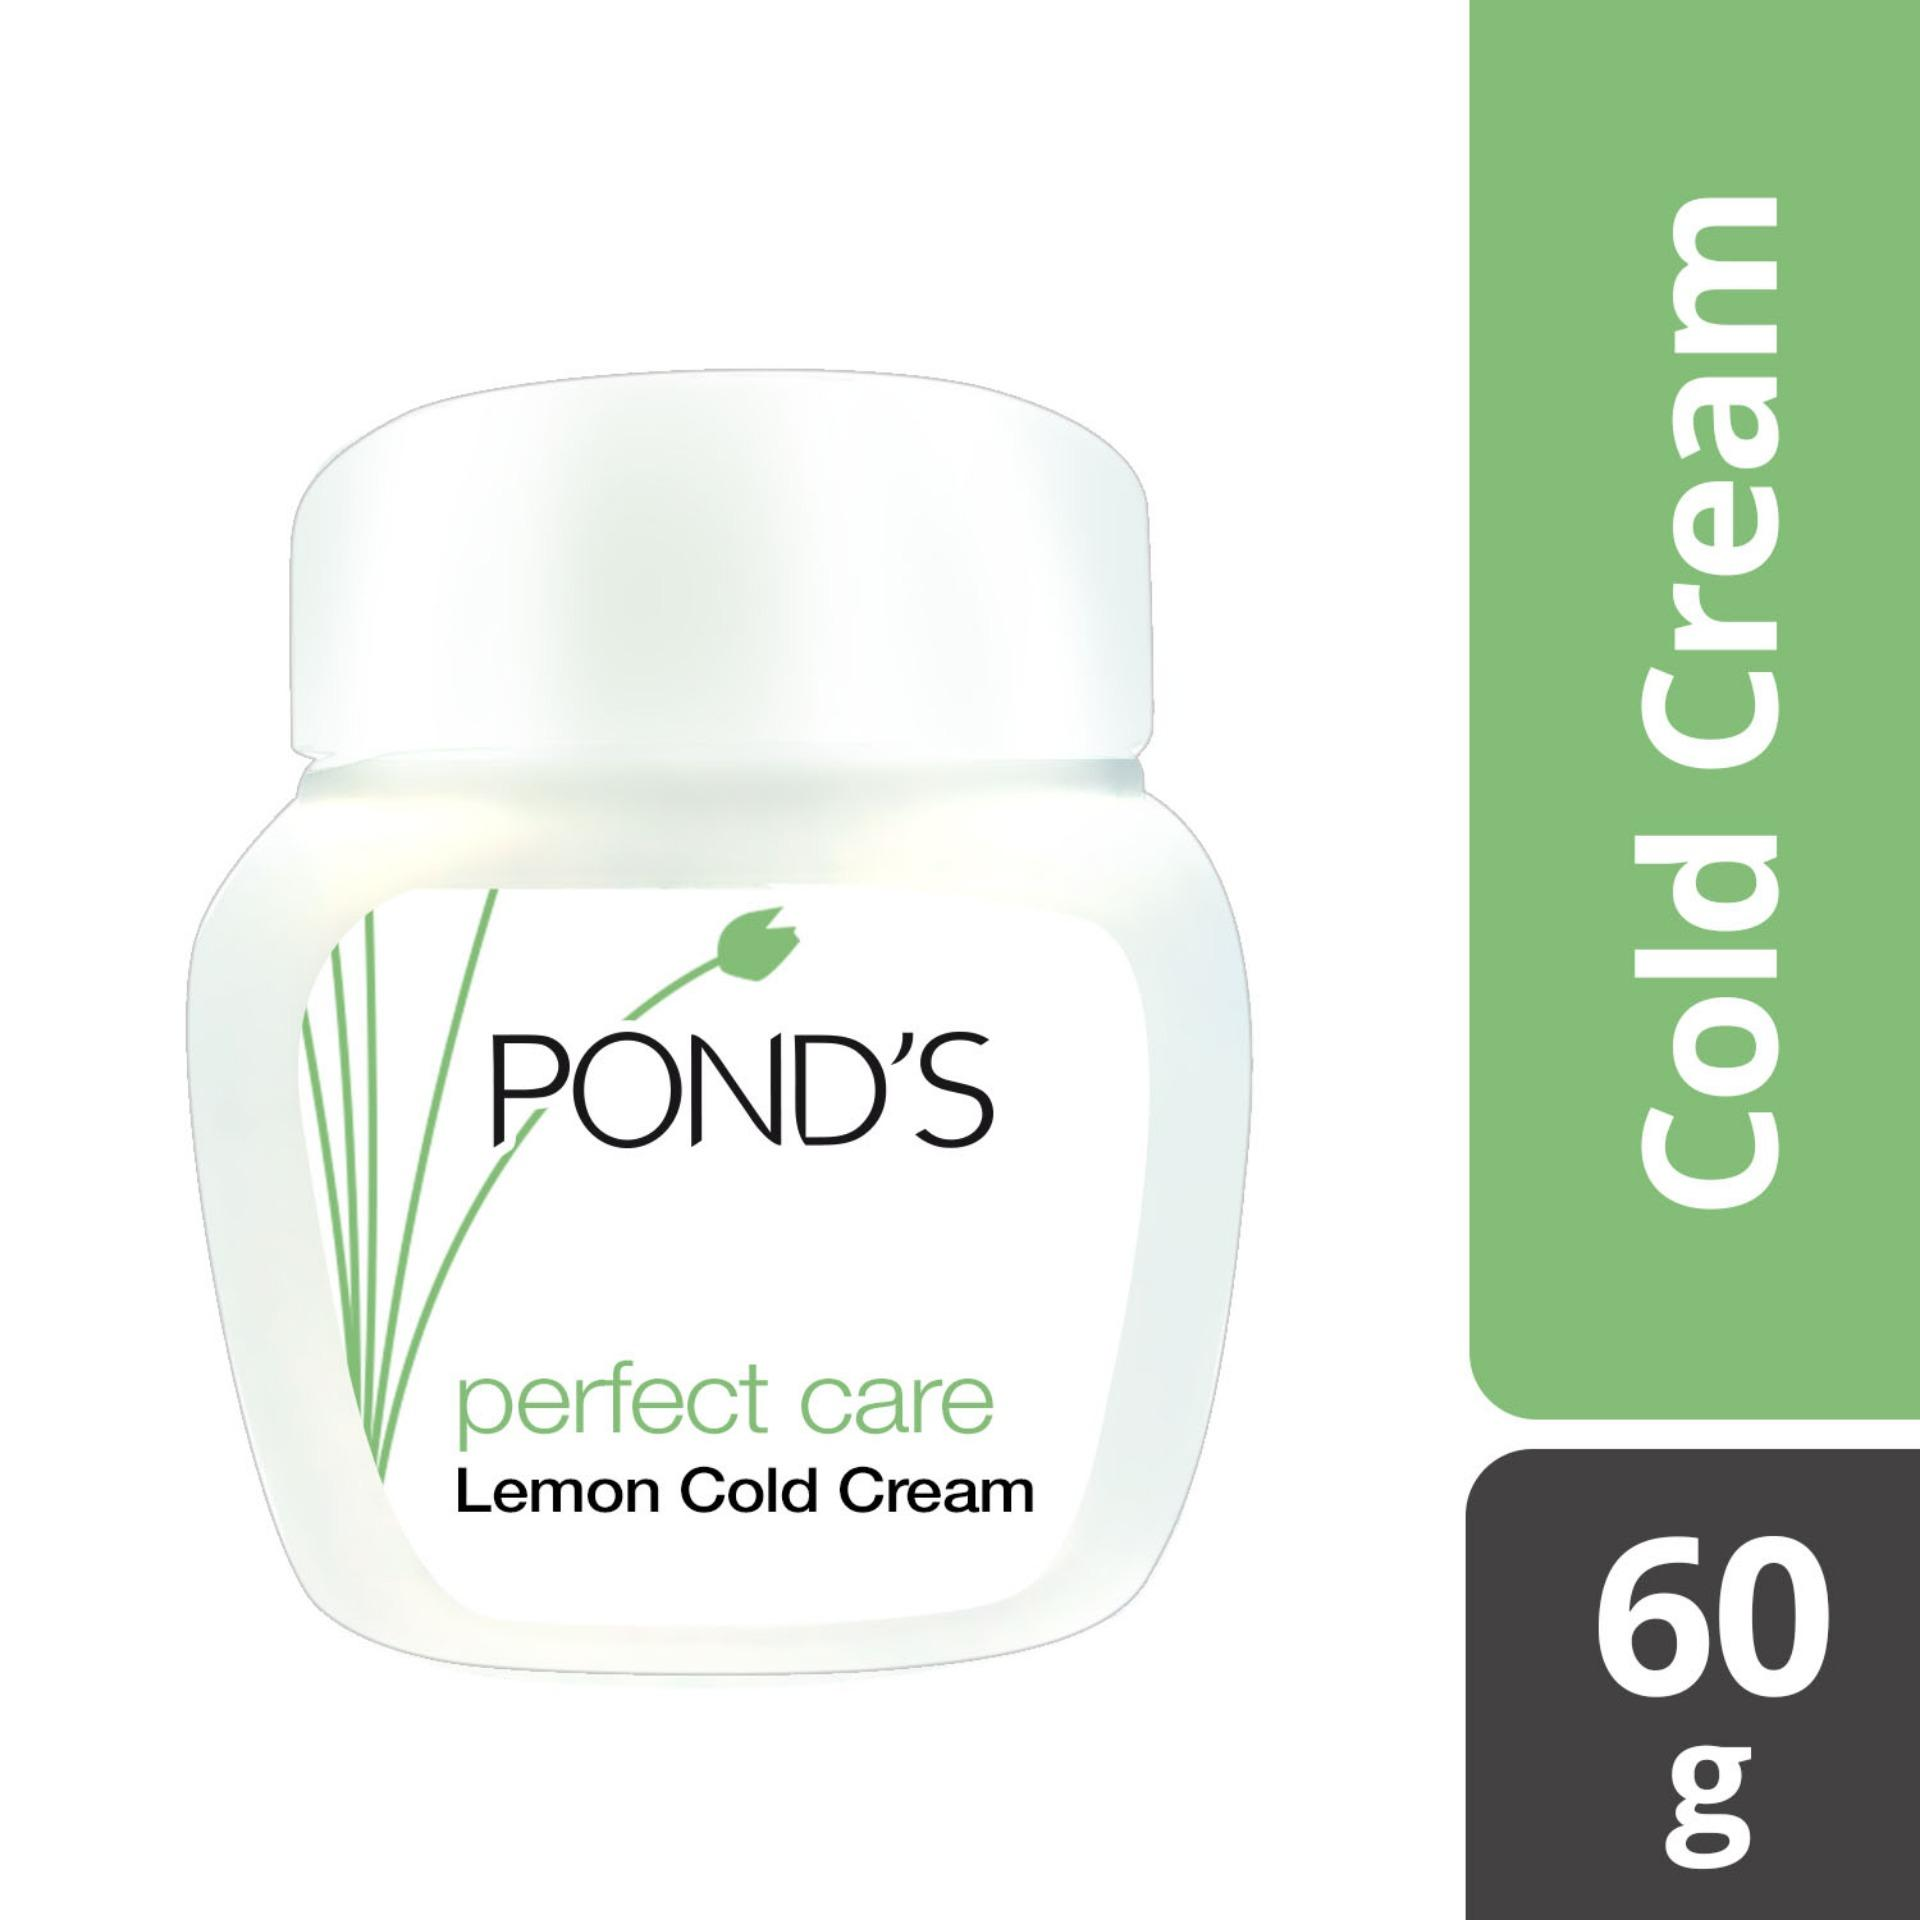 Ponds Philippines Price List Facial Wash Foam Scrub Men Energy Charge Cream 20ml Perfect Care Cold Lemon 60g